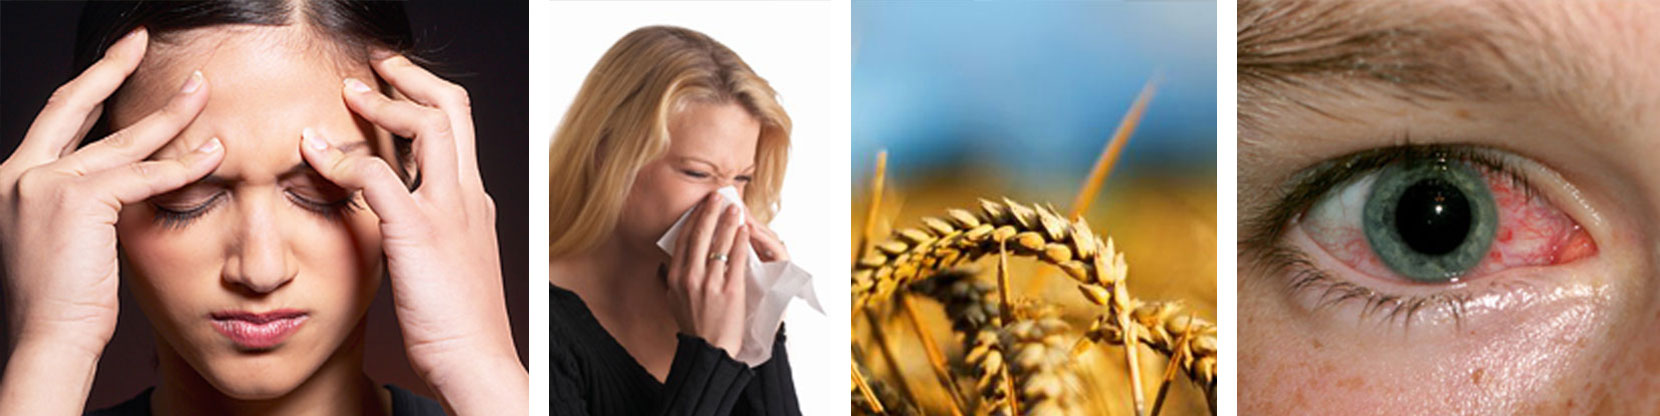 image women, sneezing, eye irritation